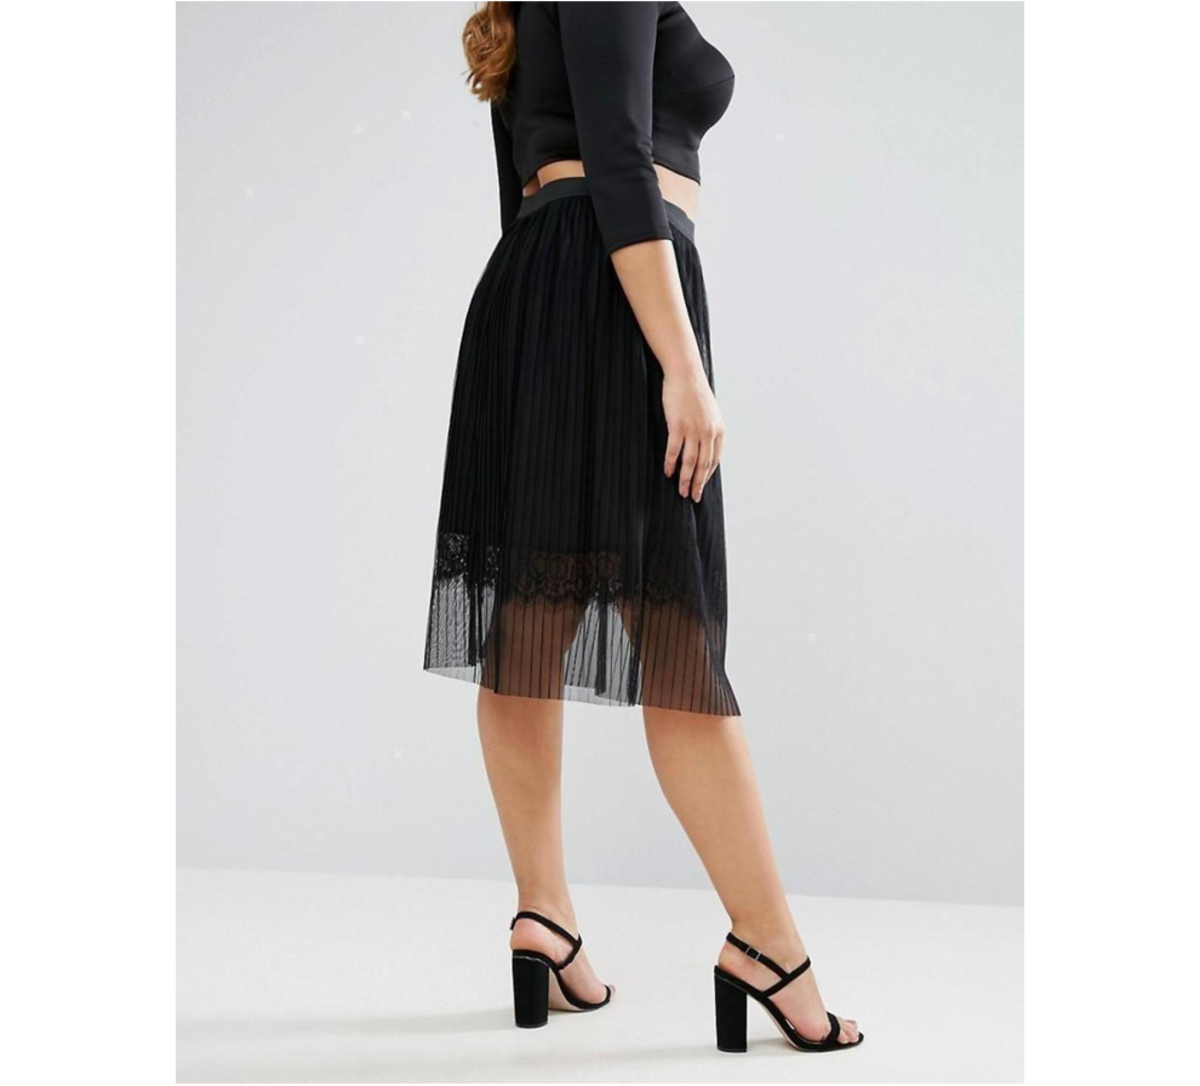 midi skirt: sheer pleated tulle, lace underlay, high-rise waist